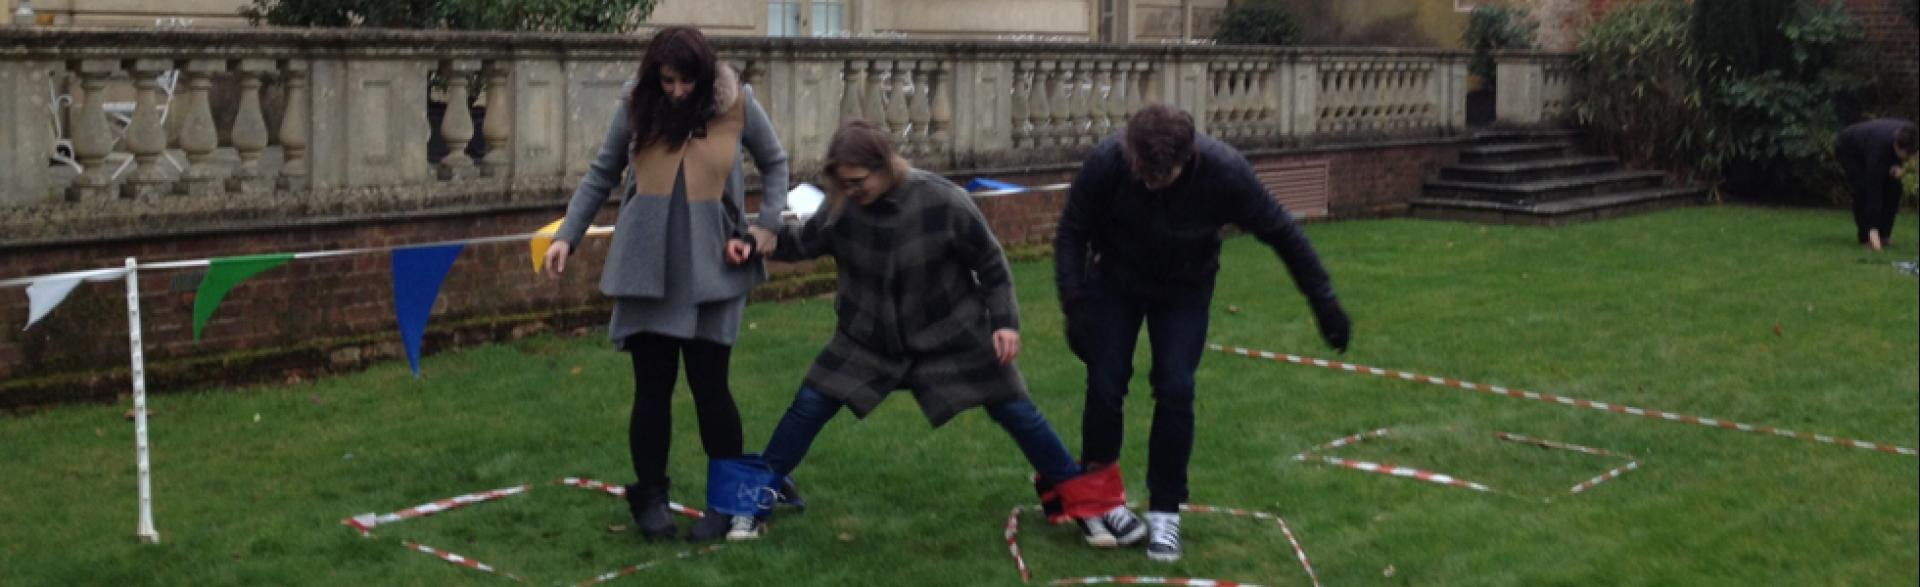 Team Building, London, December 2014